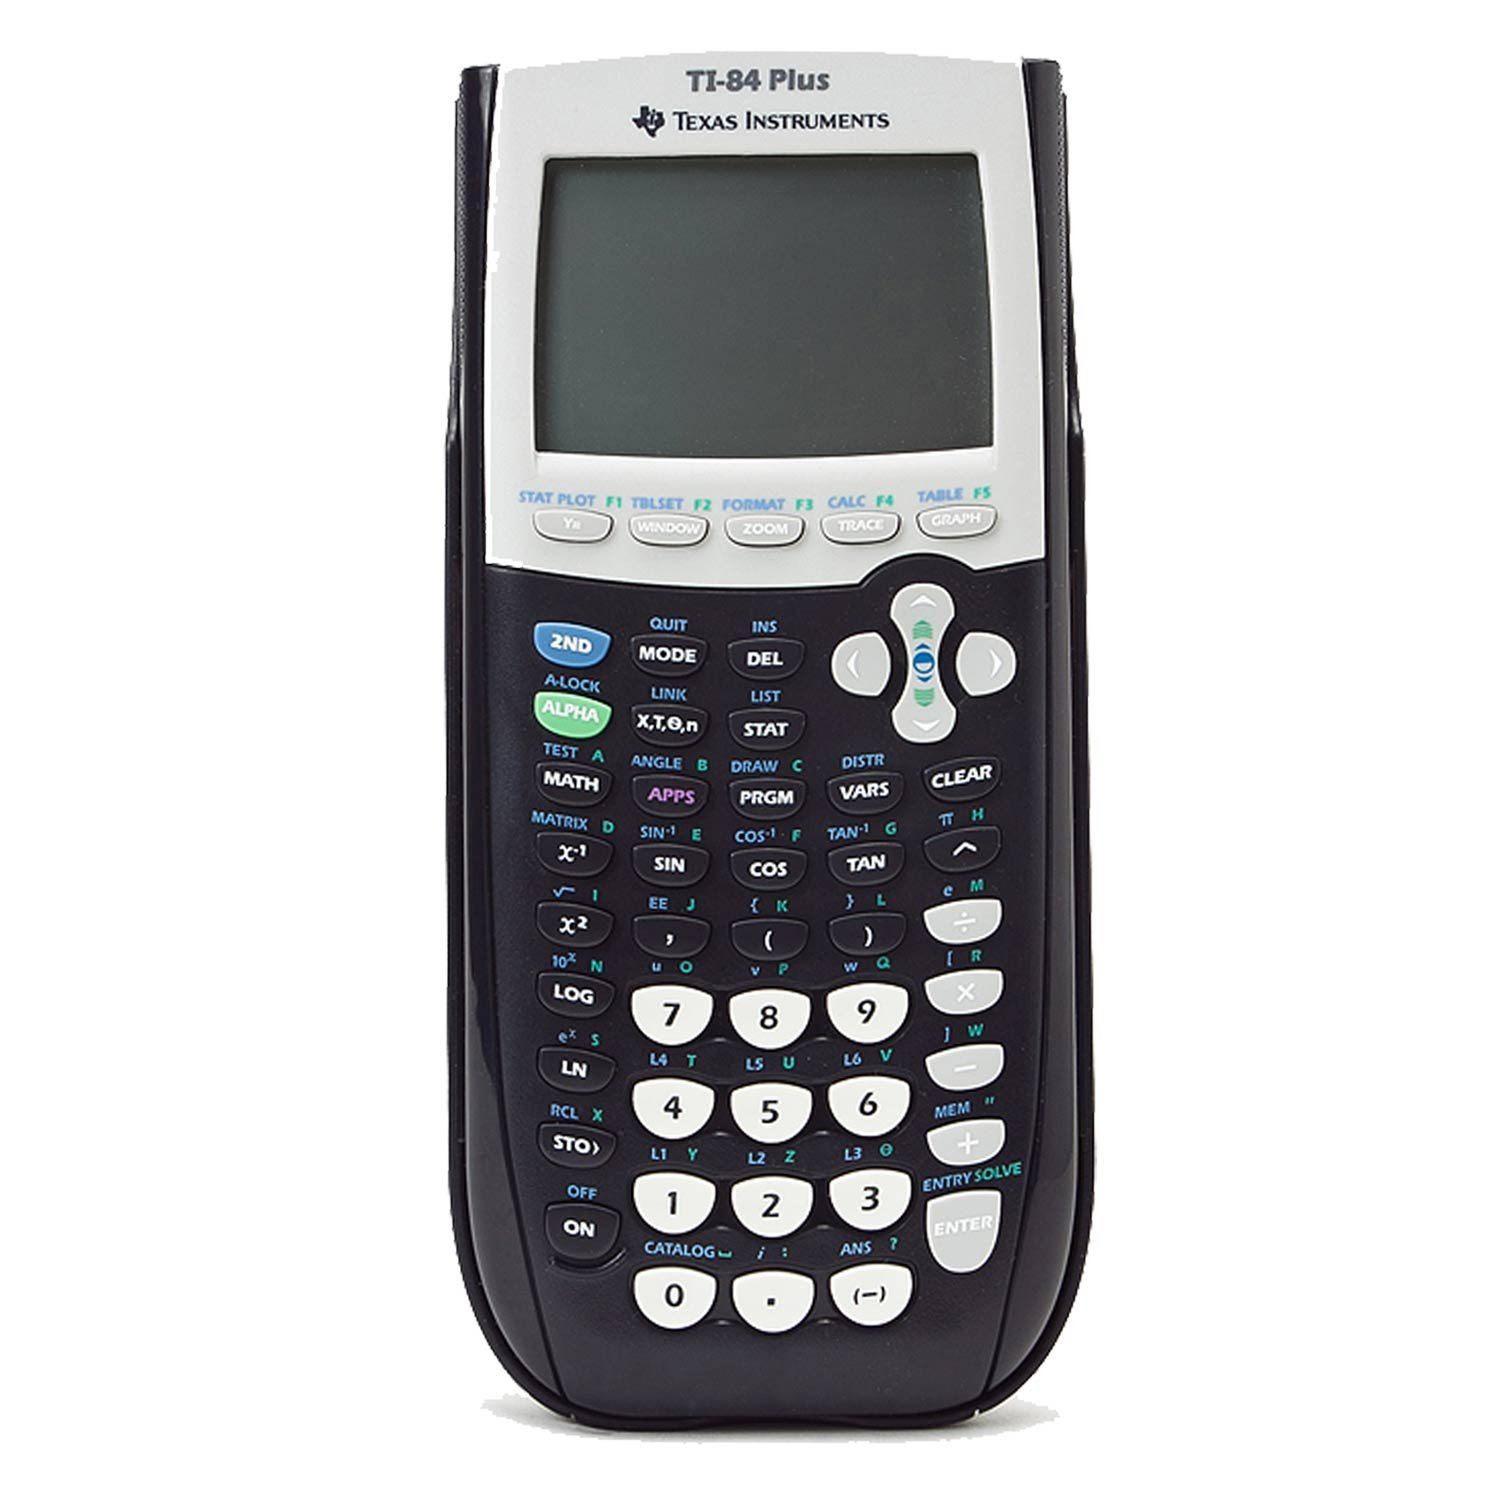 Texas Instruments TI-84 Plus Scientific Calculator